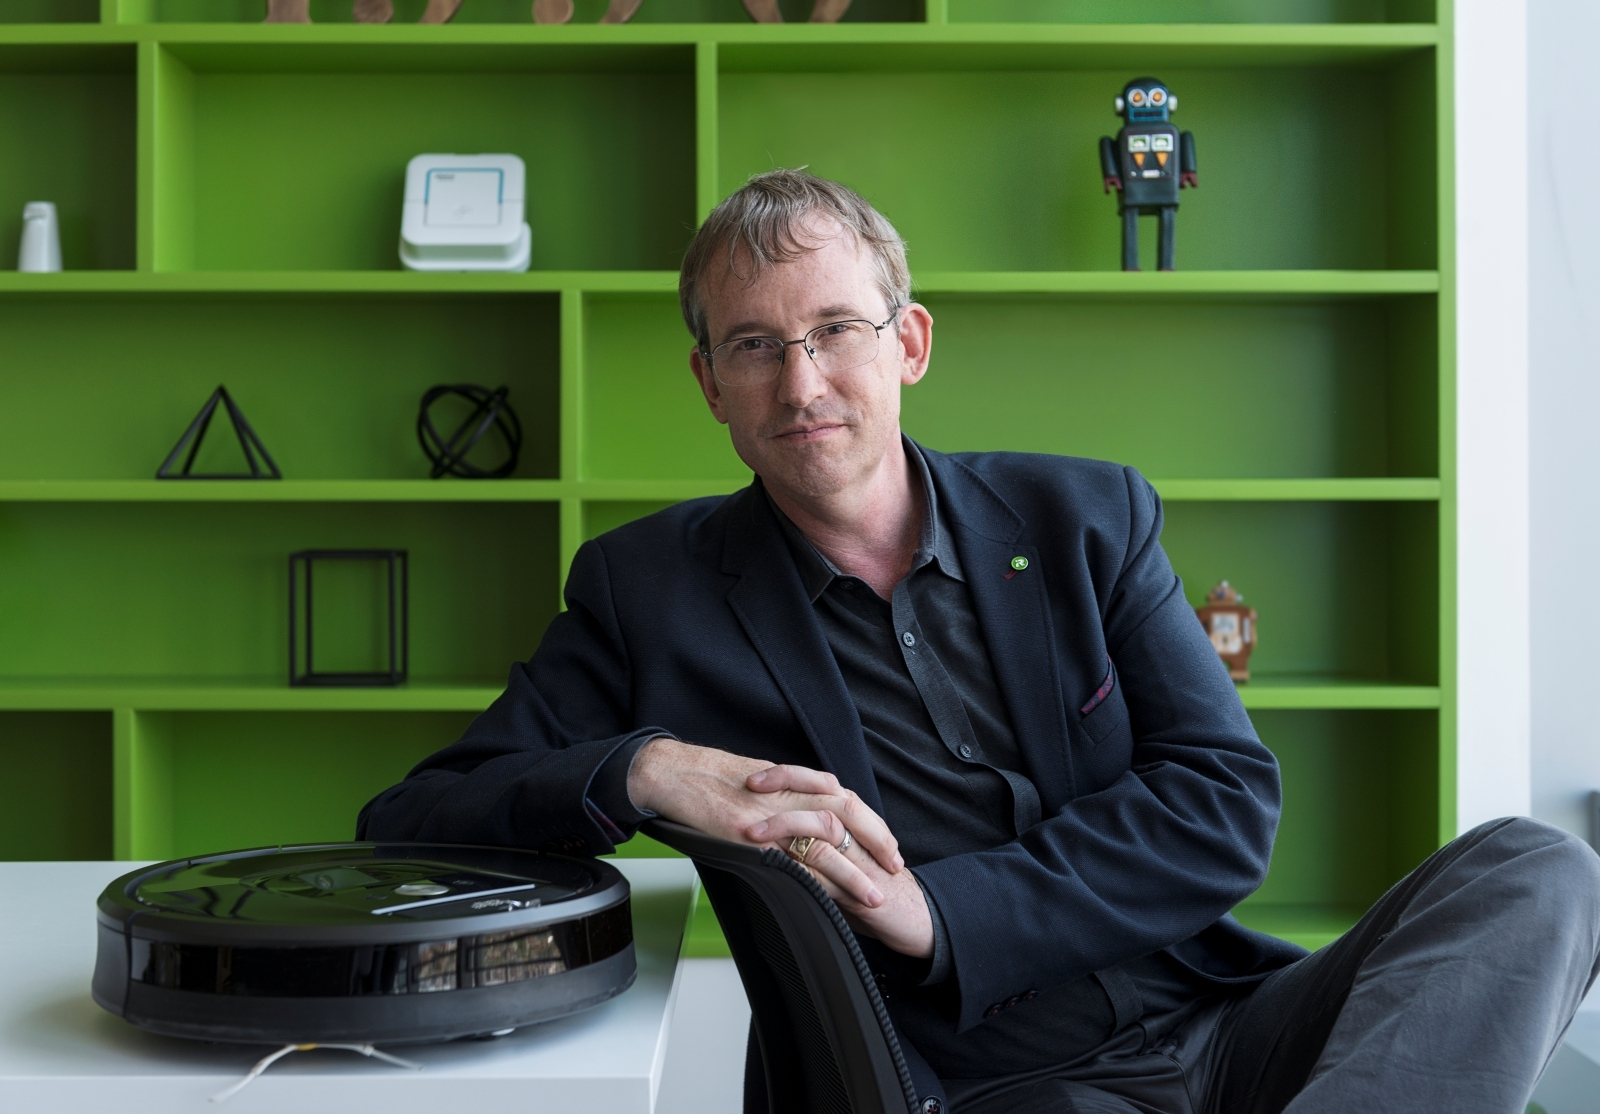 Roomba Maker Wants to Sell Maps of Your Home to Google, Amazon